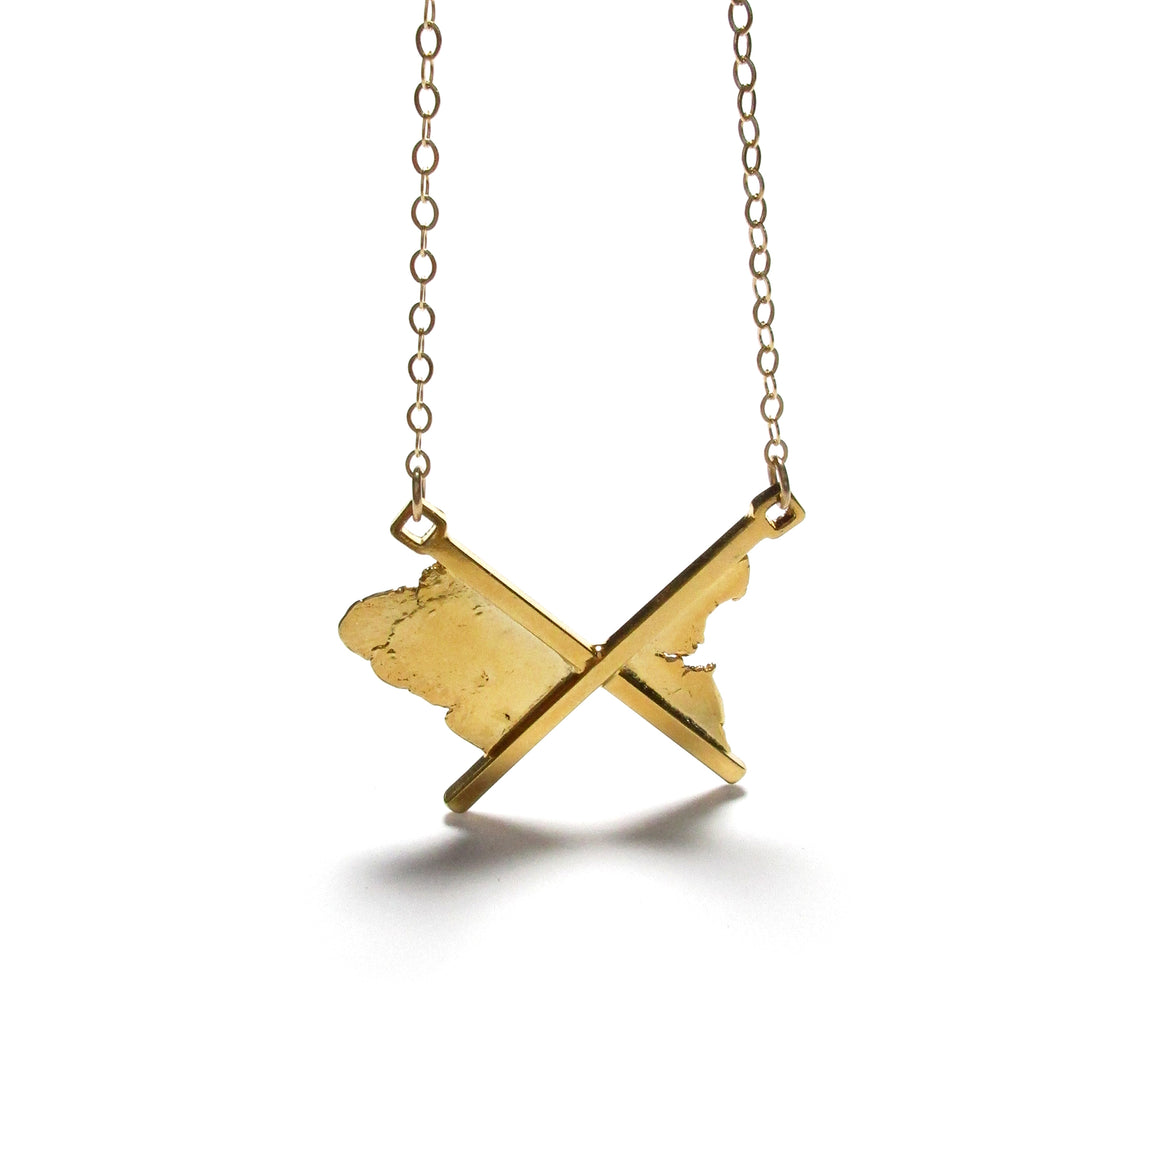 handmade 18K gold plated sterling silver unixex necklace by seth papac jewelry